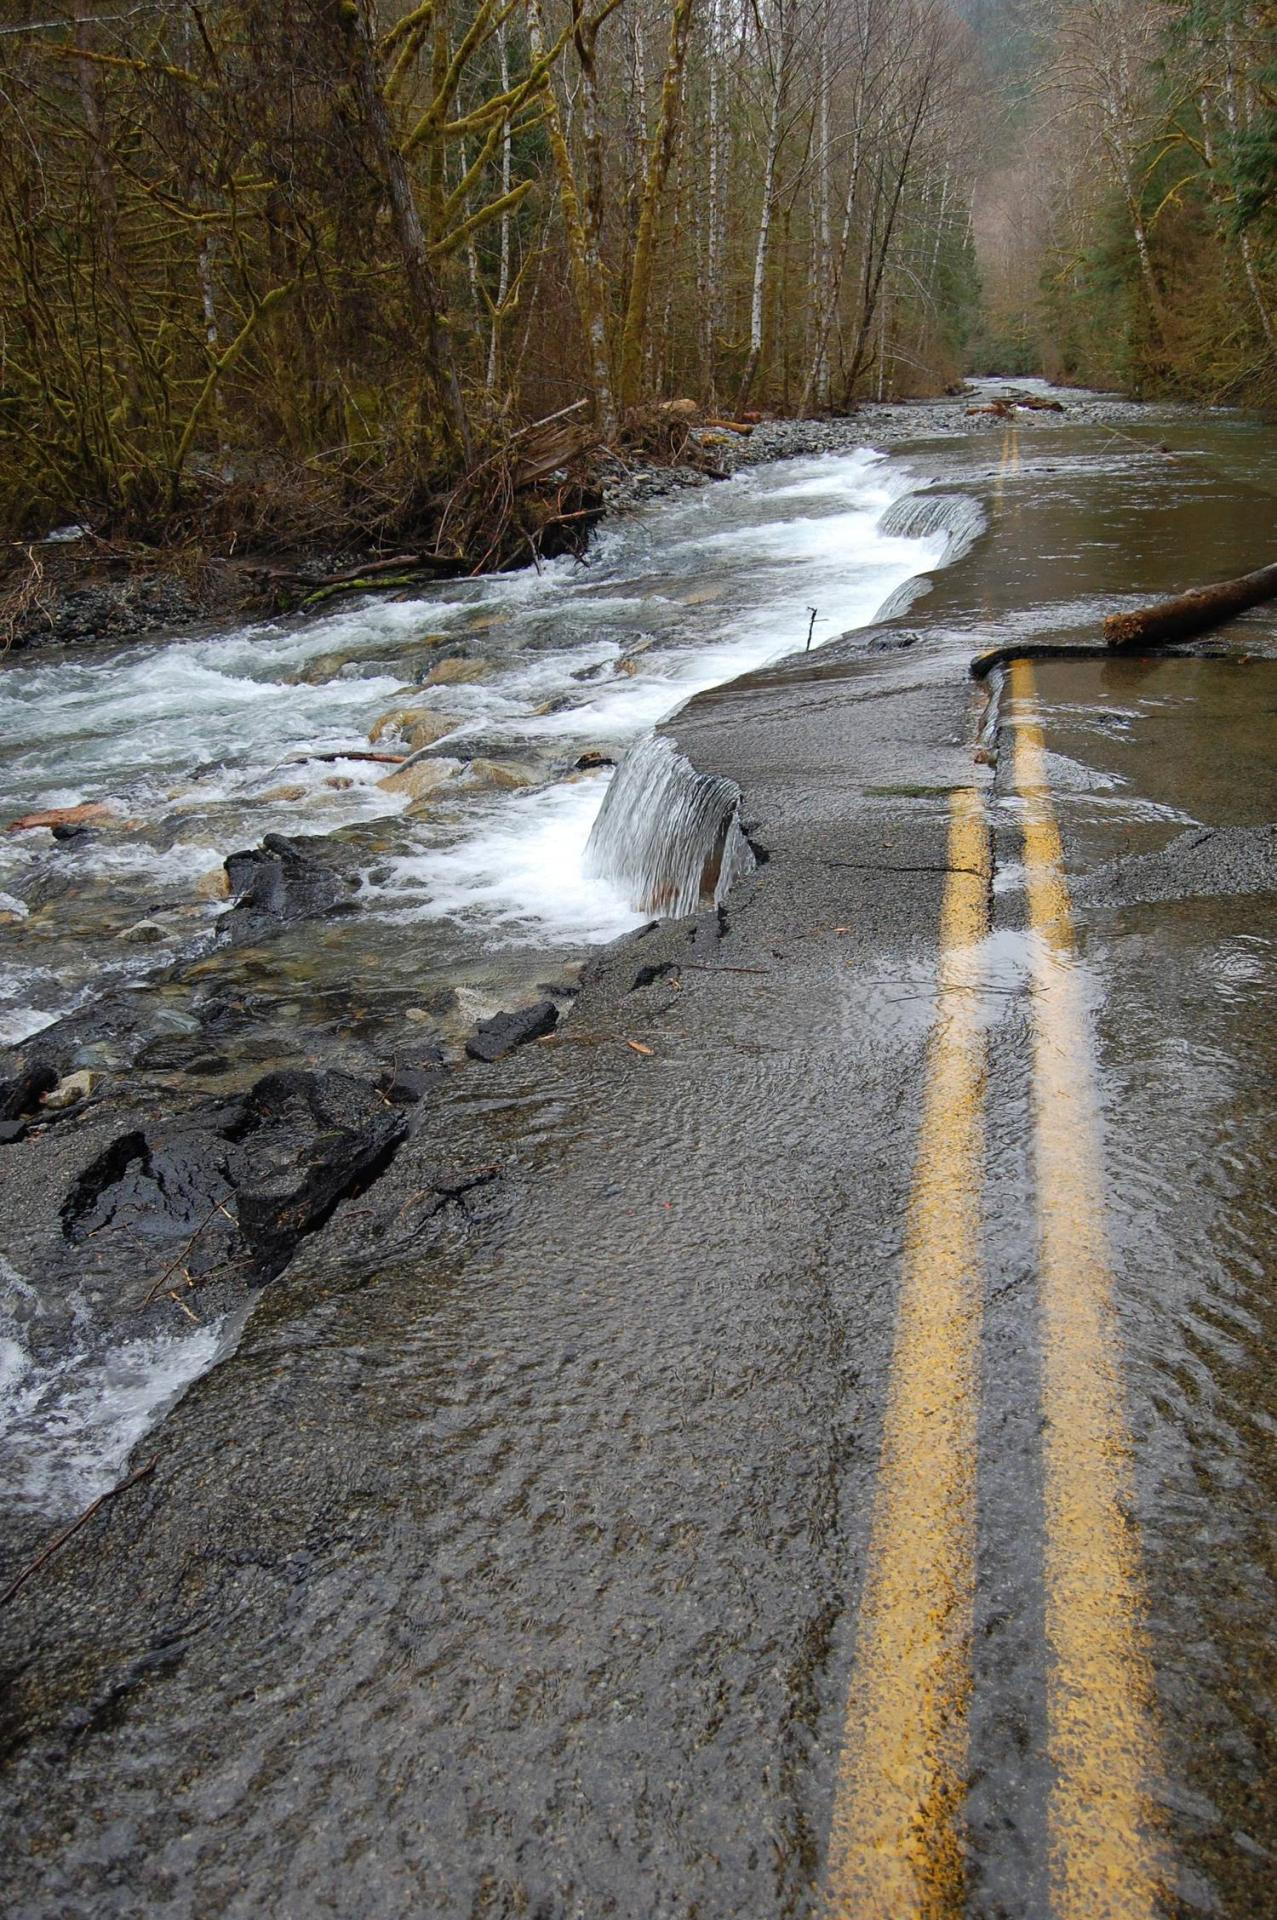 lividula:  gnostic-forest:  architectureofdoom:  Road washed out by flood, WA state.